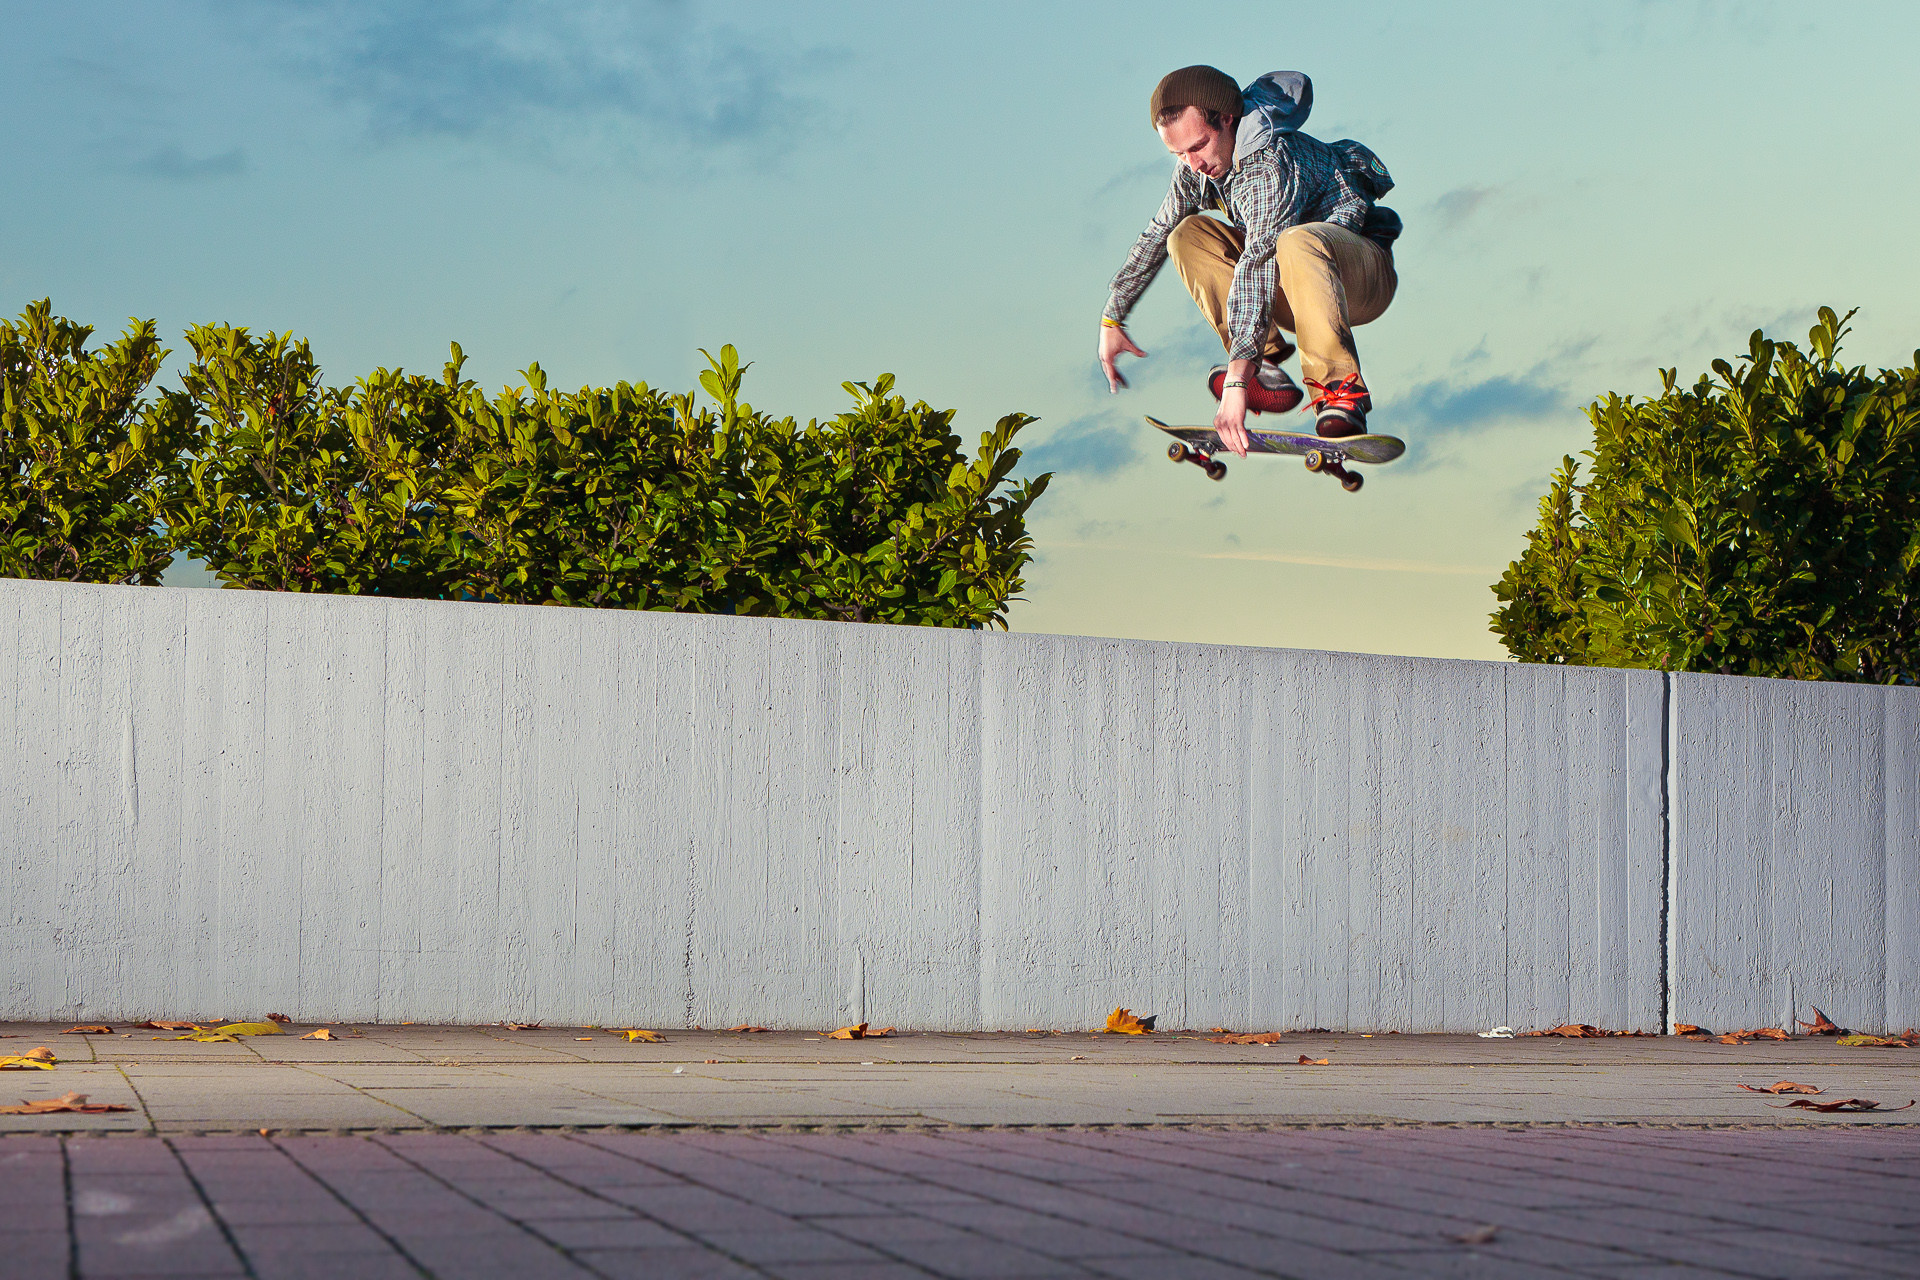 Action_Sport_Skateboard_Grap